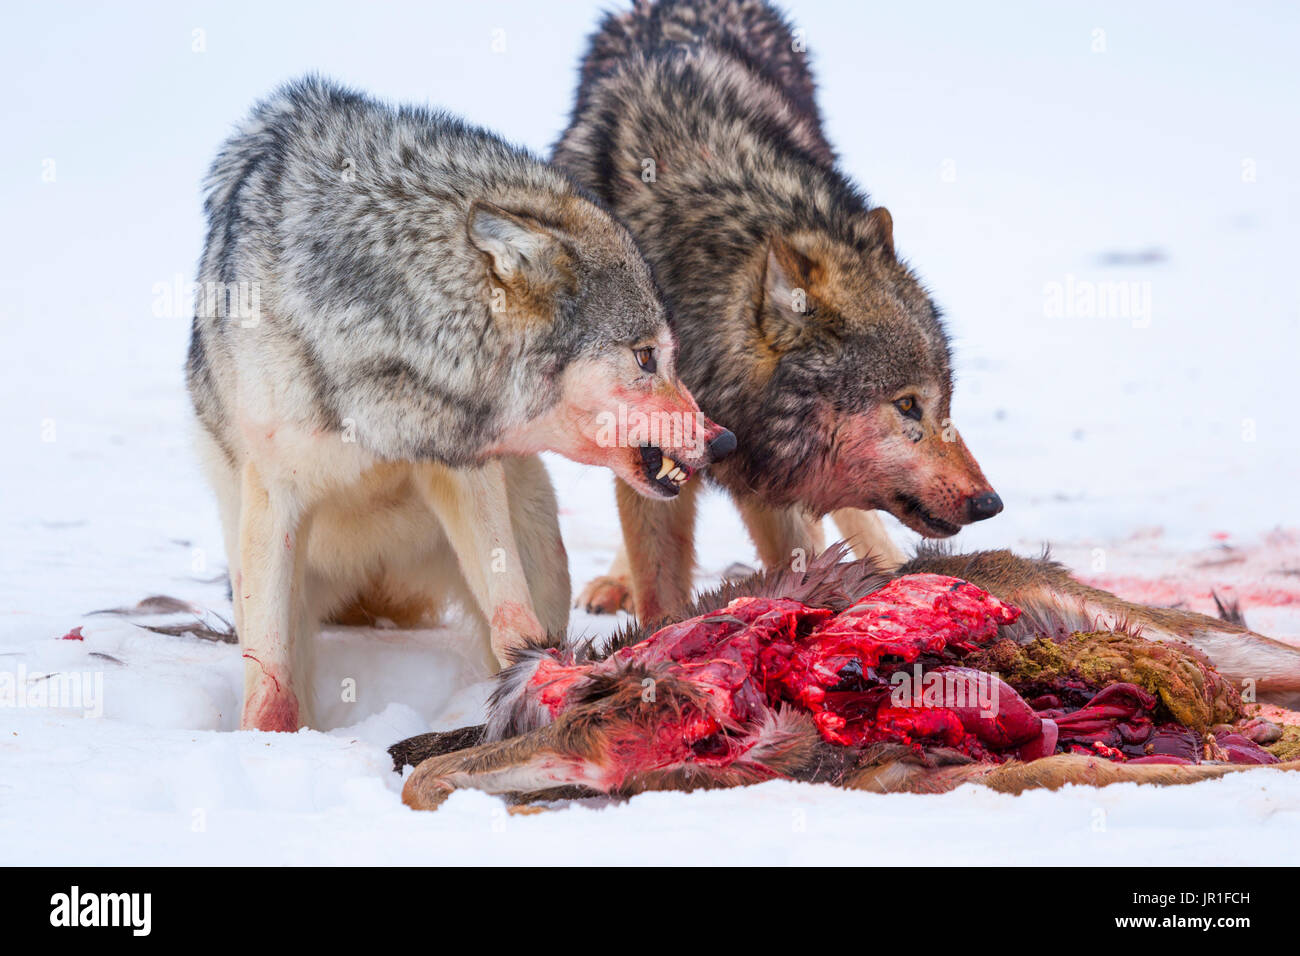 Gray wolf or grey wolf (Canis lupus) eating a deer - Stock Image